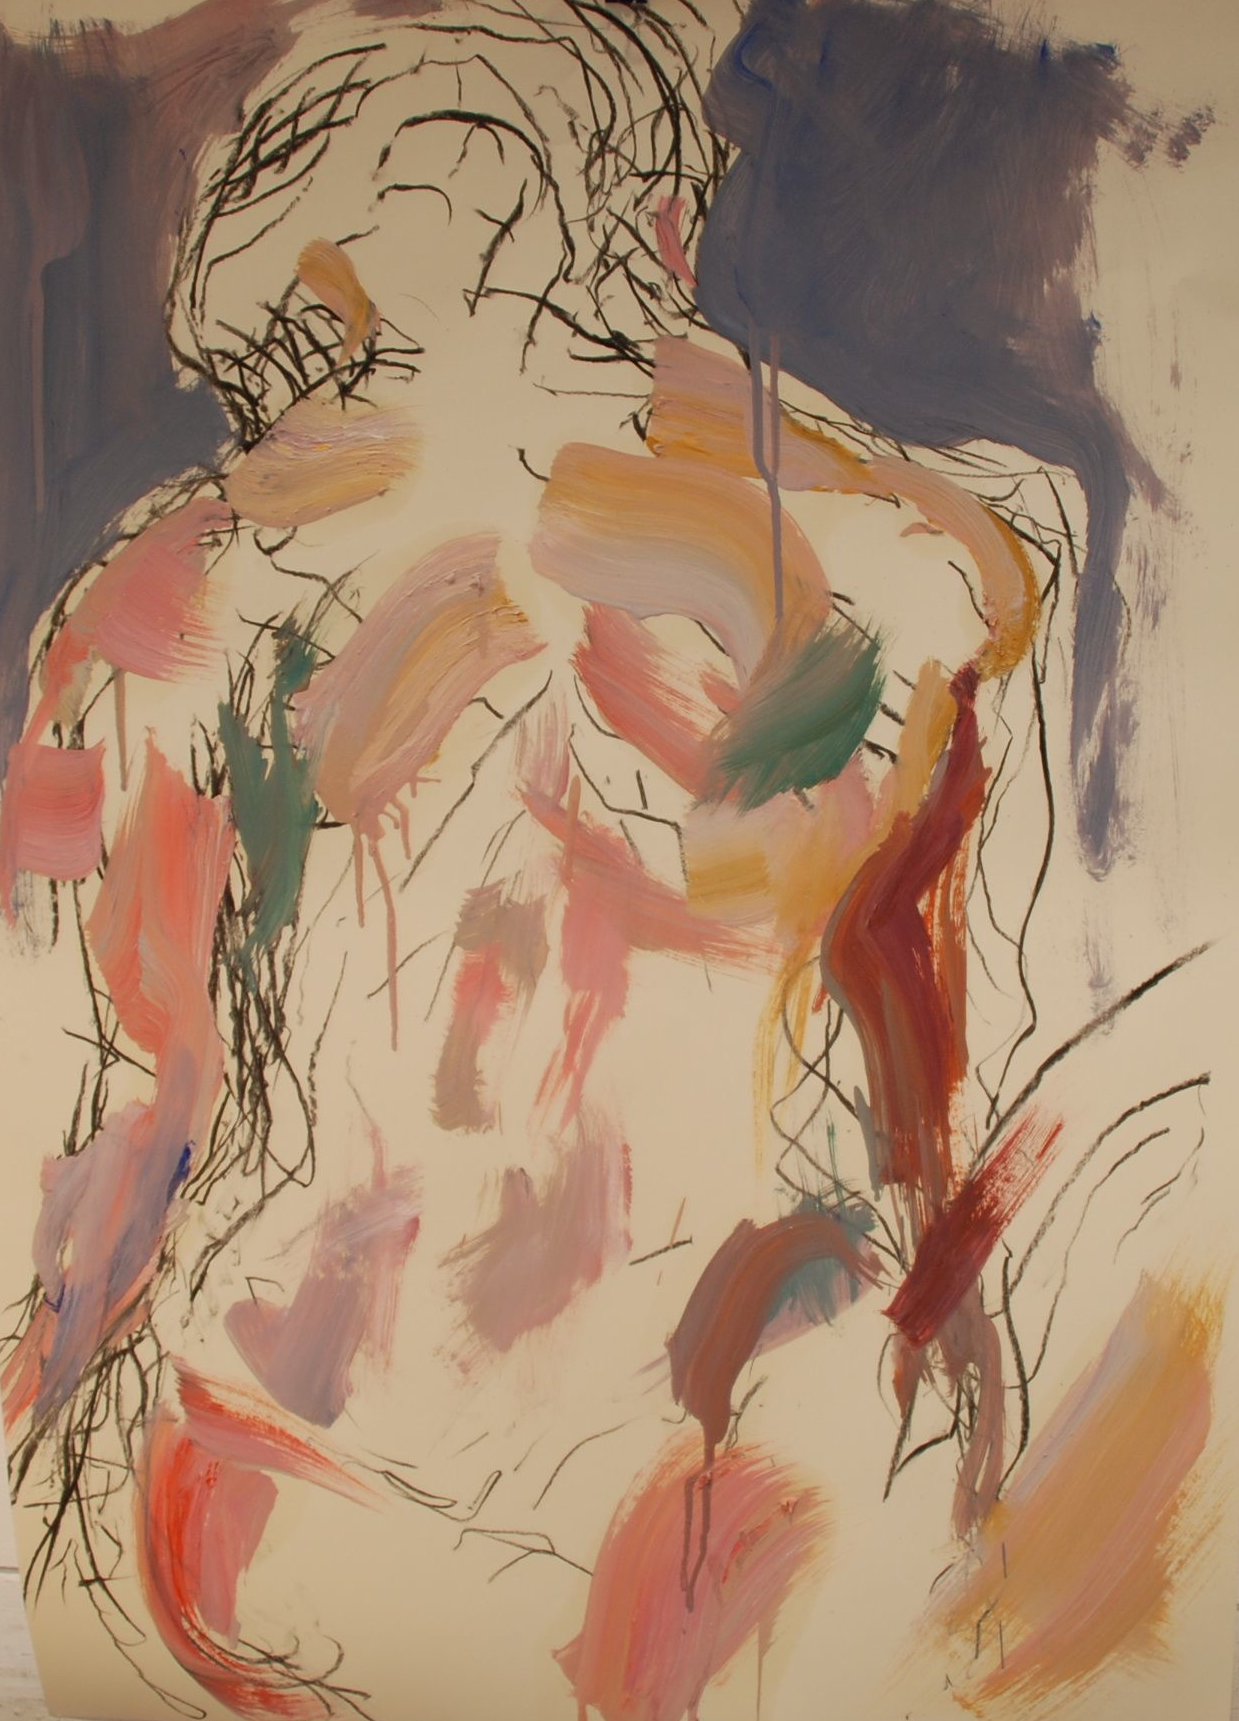 Elina Aho, From Series In-Between III, 2012, mixed media on paper, 84 x 56 cm.png